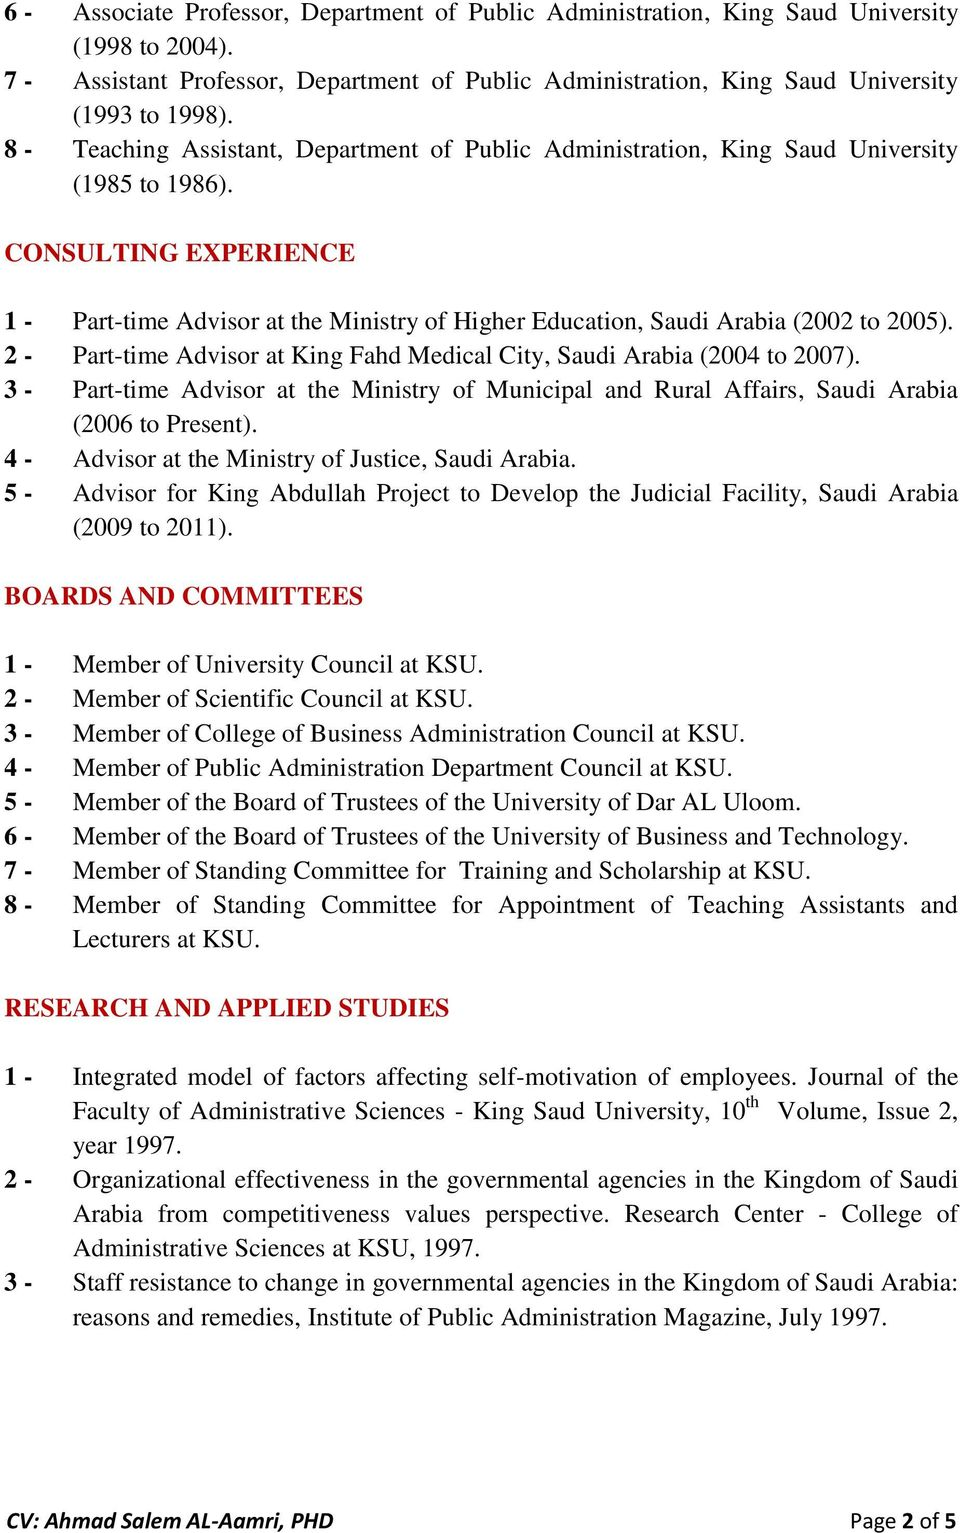 CONSULTING EXPERIENCE 1 - Part-time Advisor at the Ministry of Higher Education, Saudi Arabia (2002 to 2005). 2 - Part-time Advisor at King Fahd Medical City, Saudi Arabia (2004 to 2007).